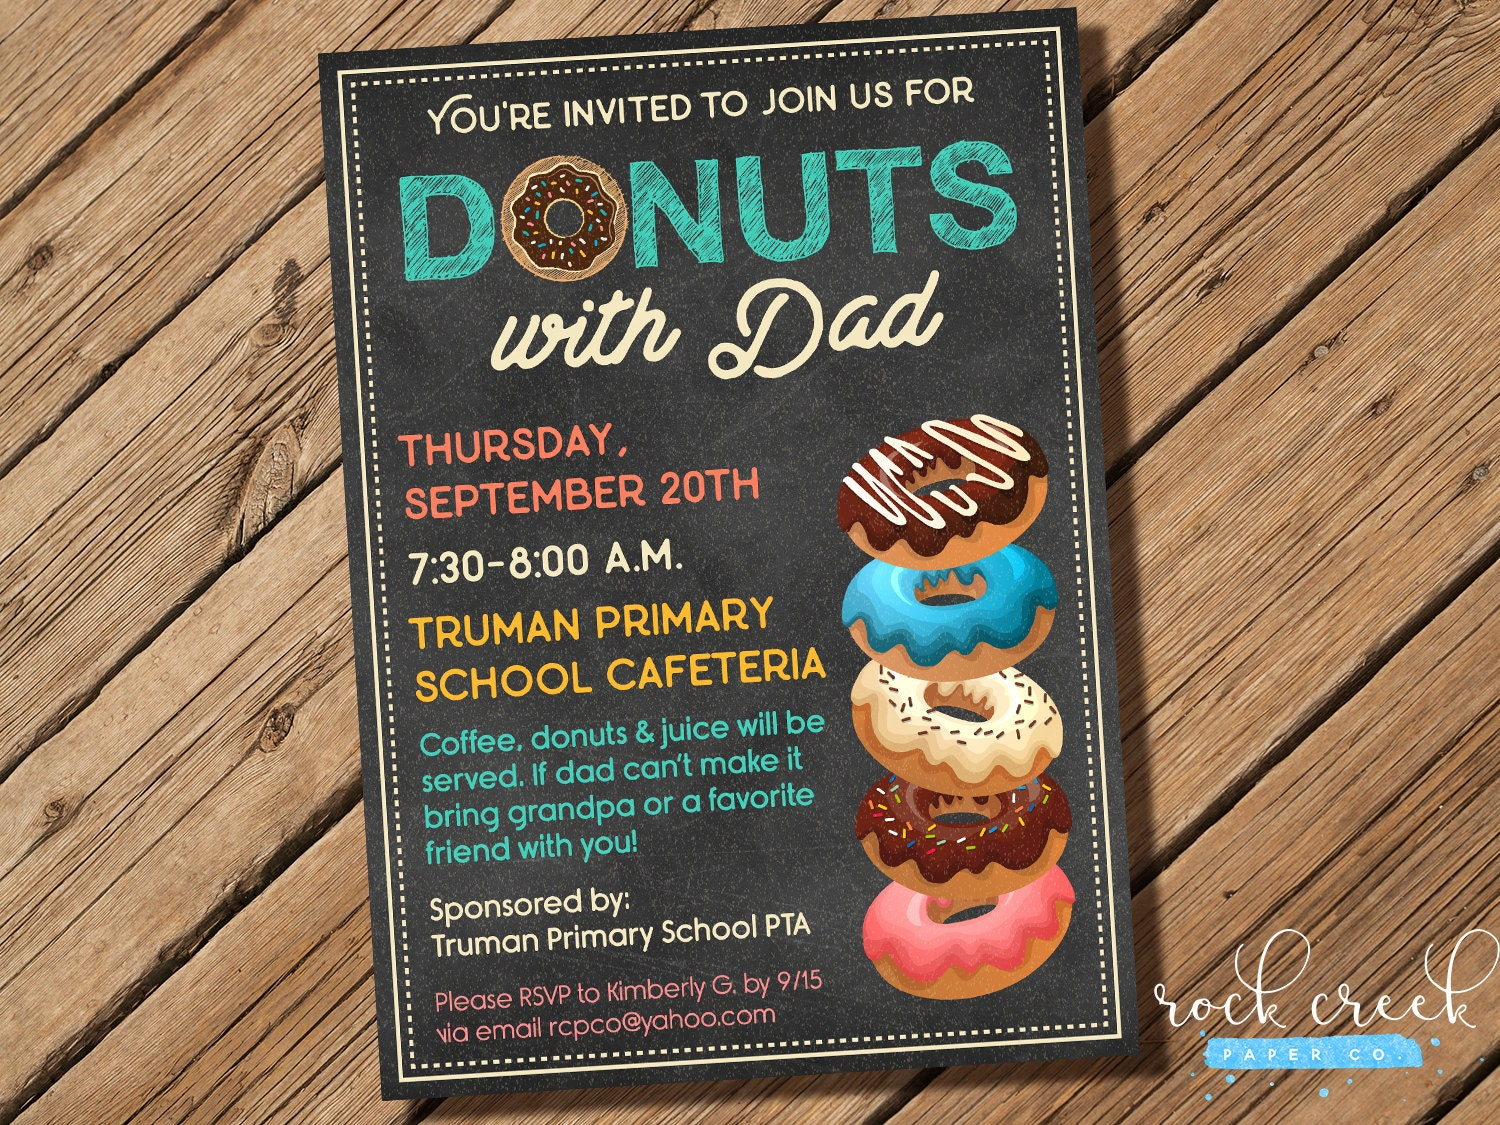 Donuts with Dad Invitation Doughnuts with Dad Invitation ...